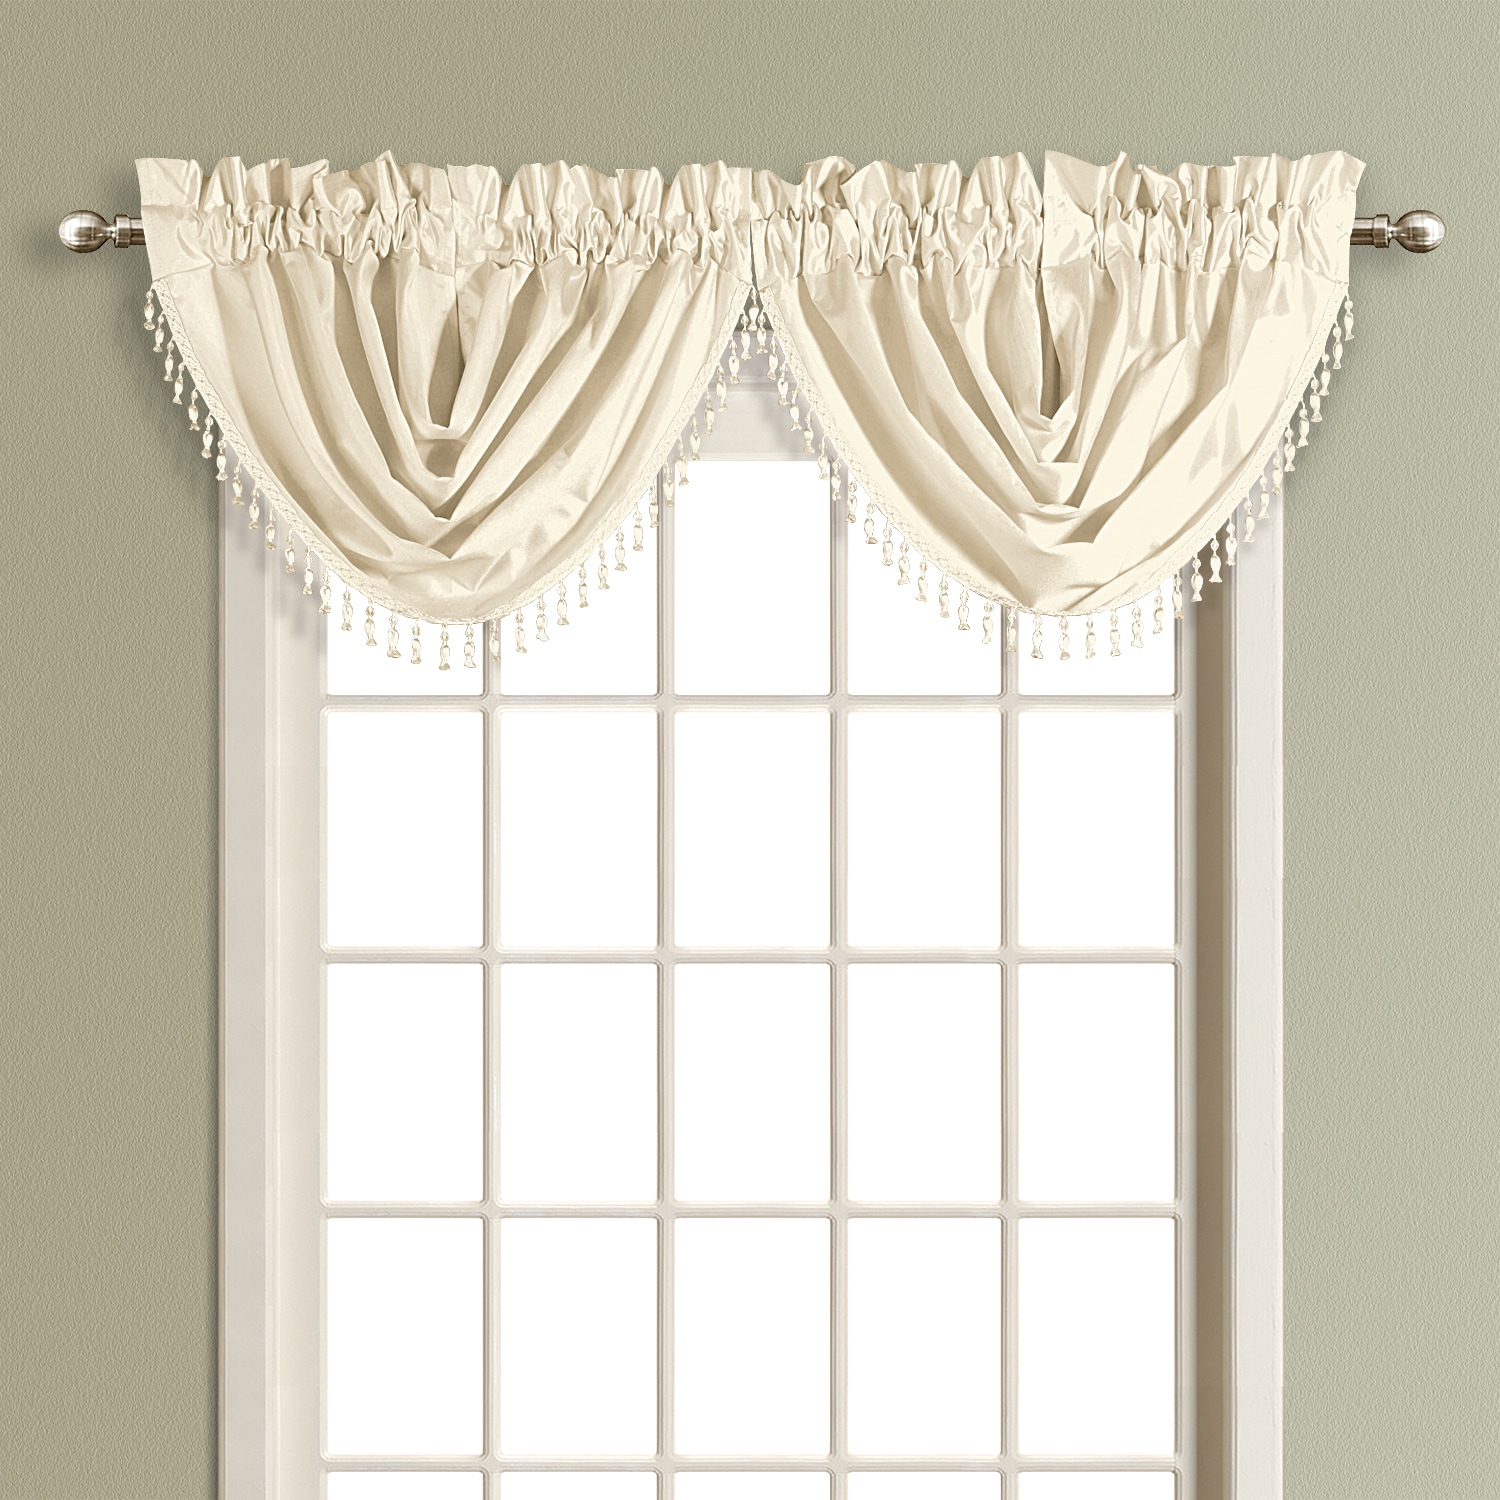 over home seasons garden overstock product waterfall elrene all to orders on polyester free valance blend hang shipping how